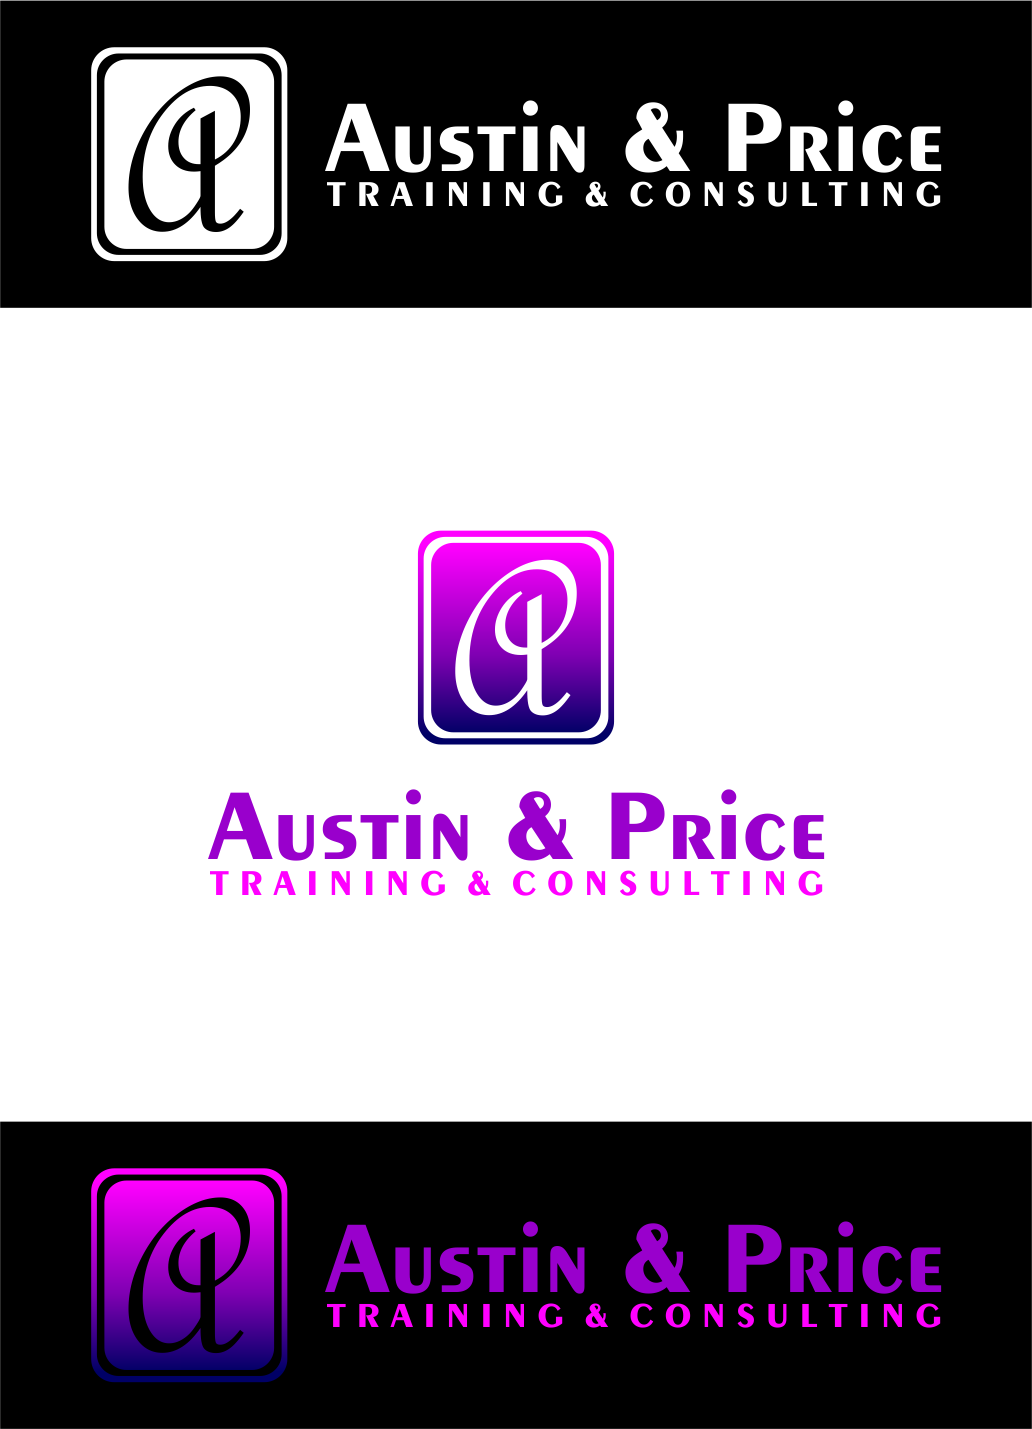 Logo Design by Agus Martoyo - Entry No. 196 in the Logo Design Contest Artistic Logo Design for Austin Price Advisory.